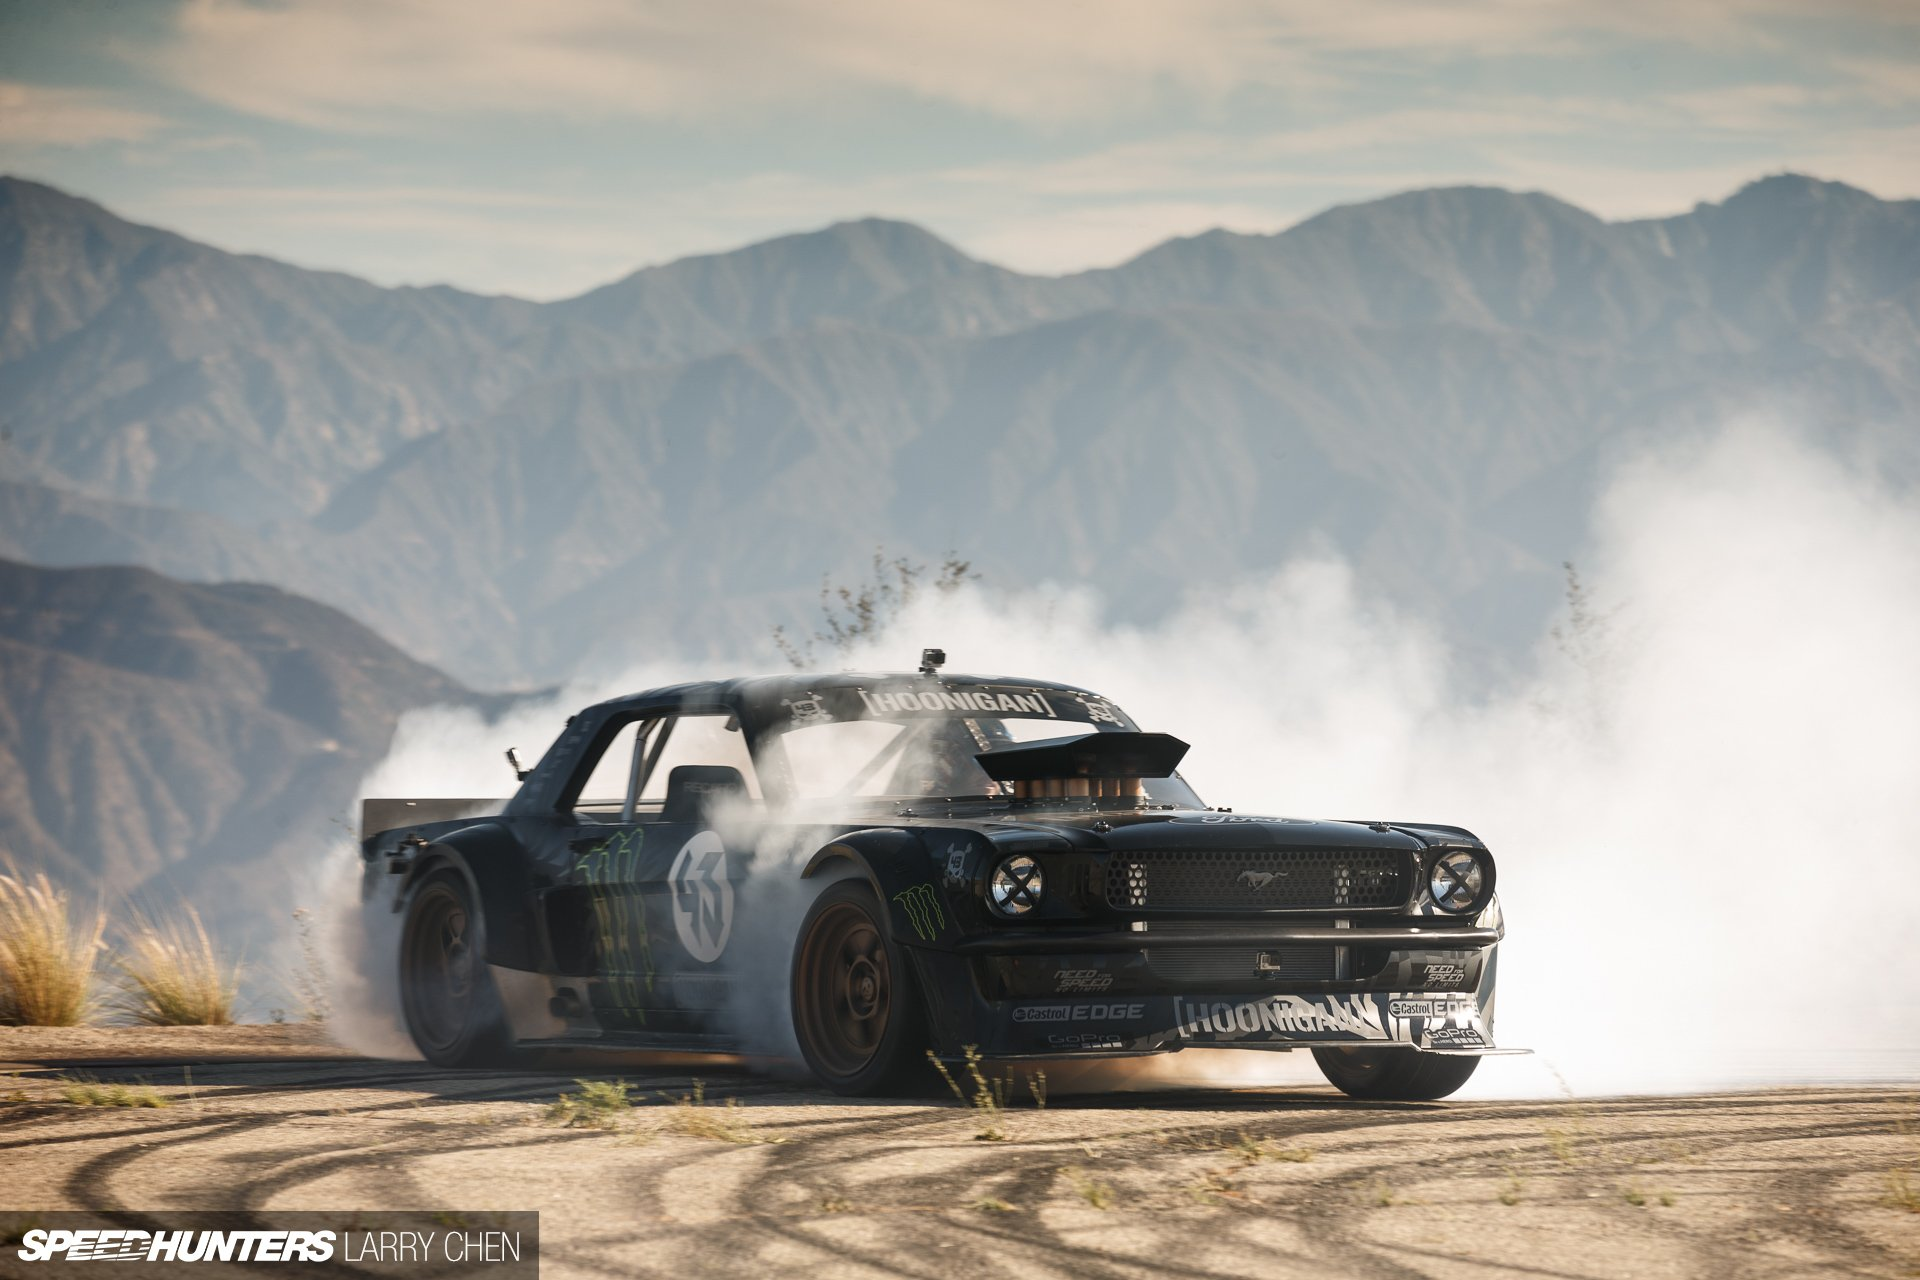 Hd wallpaper ken block - Hoonicorn Wallpaper Wallpapersafari